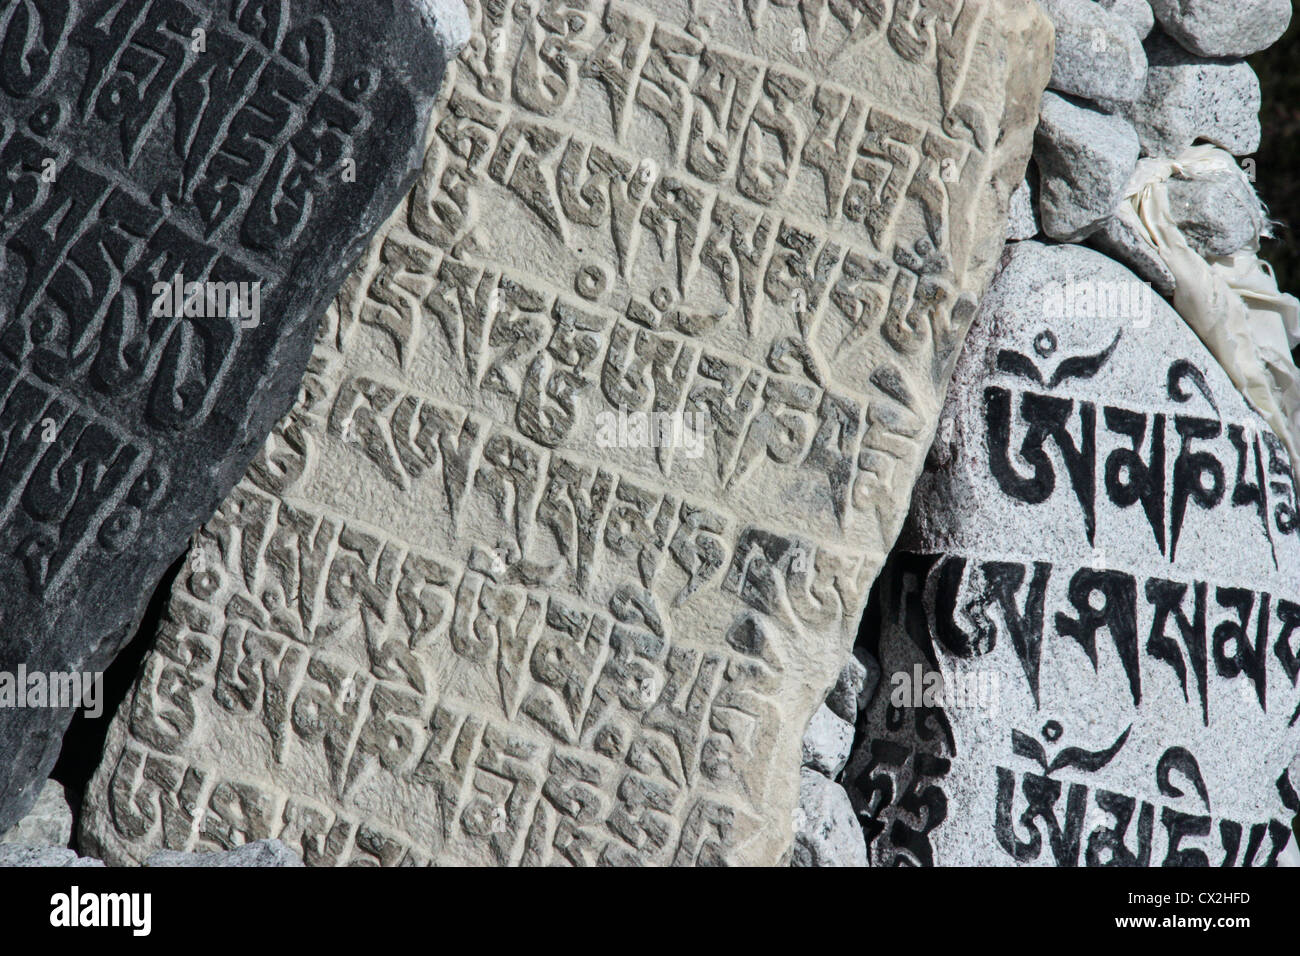 'Mani' stone, depicting Buddhist mantra 'Om Mani Padme Hum'- 'Hail to the jewel in the lotus, - Stock Image